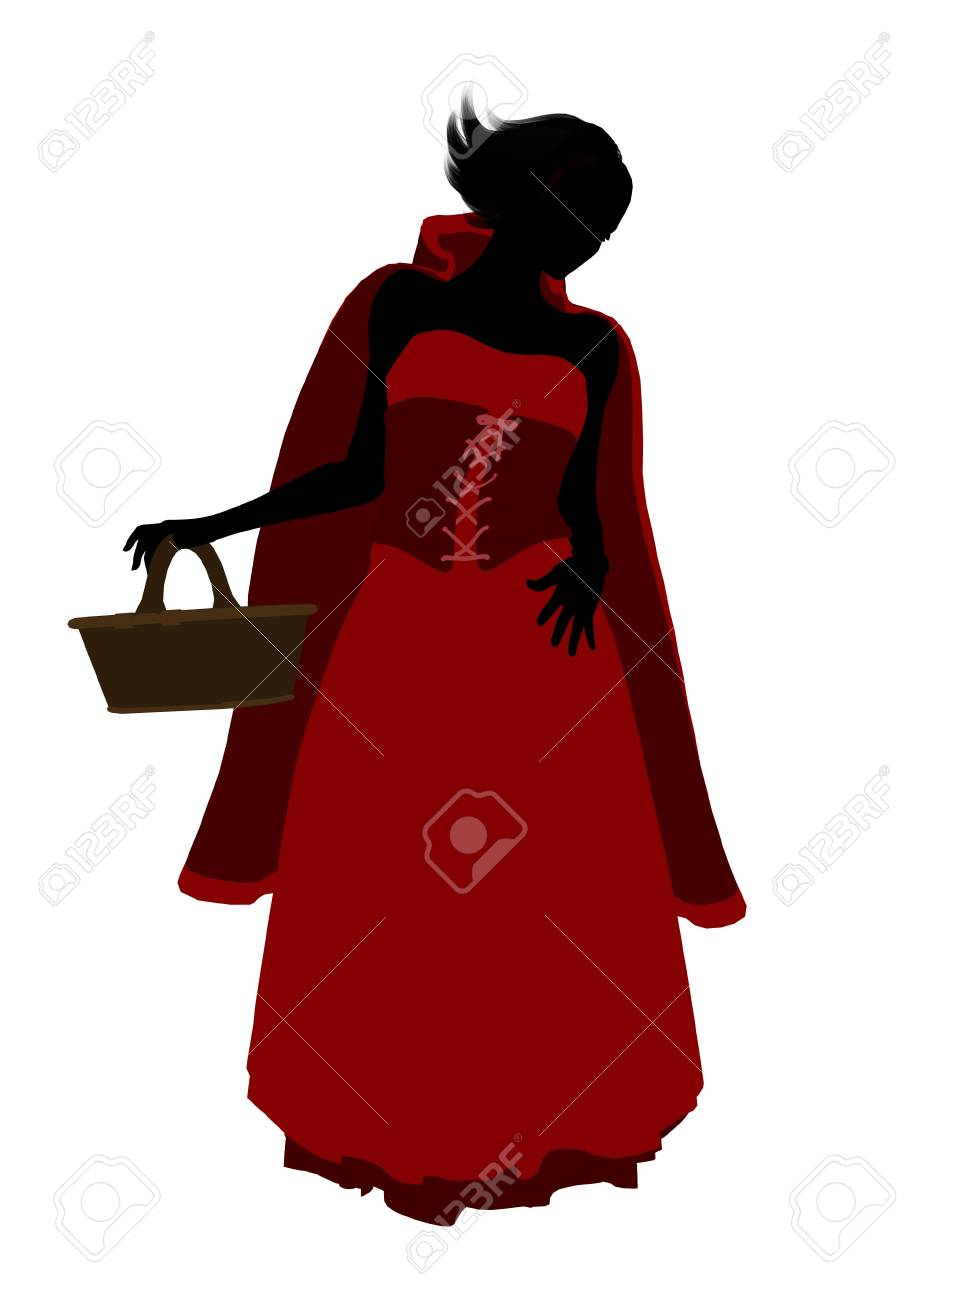 Little Red Riding Hood illustration silhouette on a white background Stock Illustration - 6586374